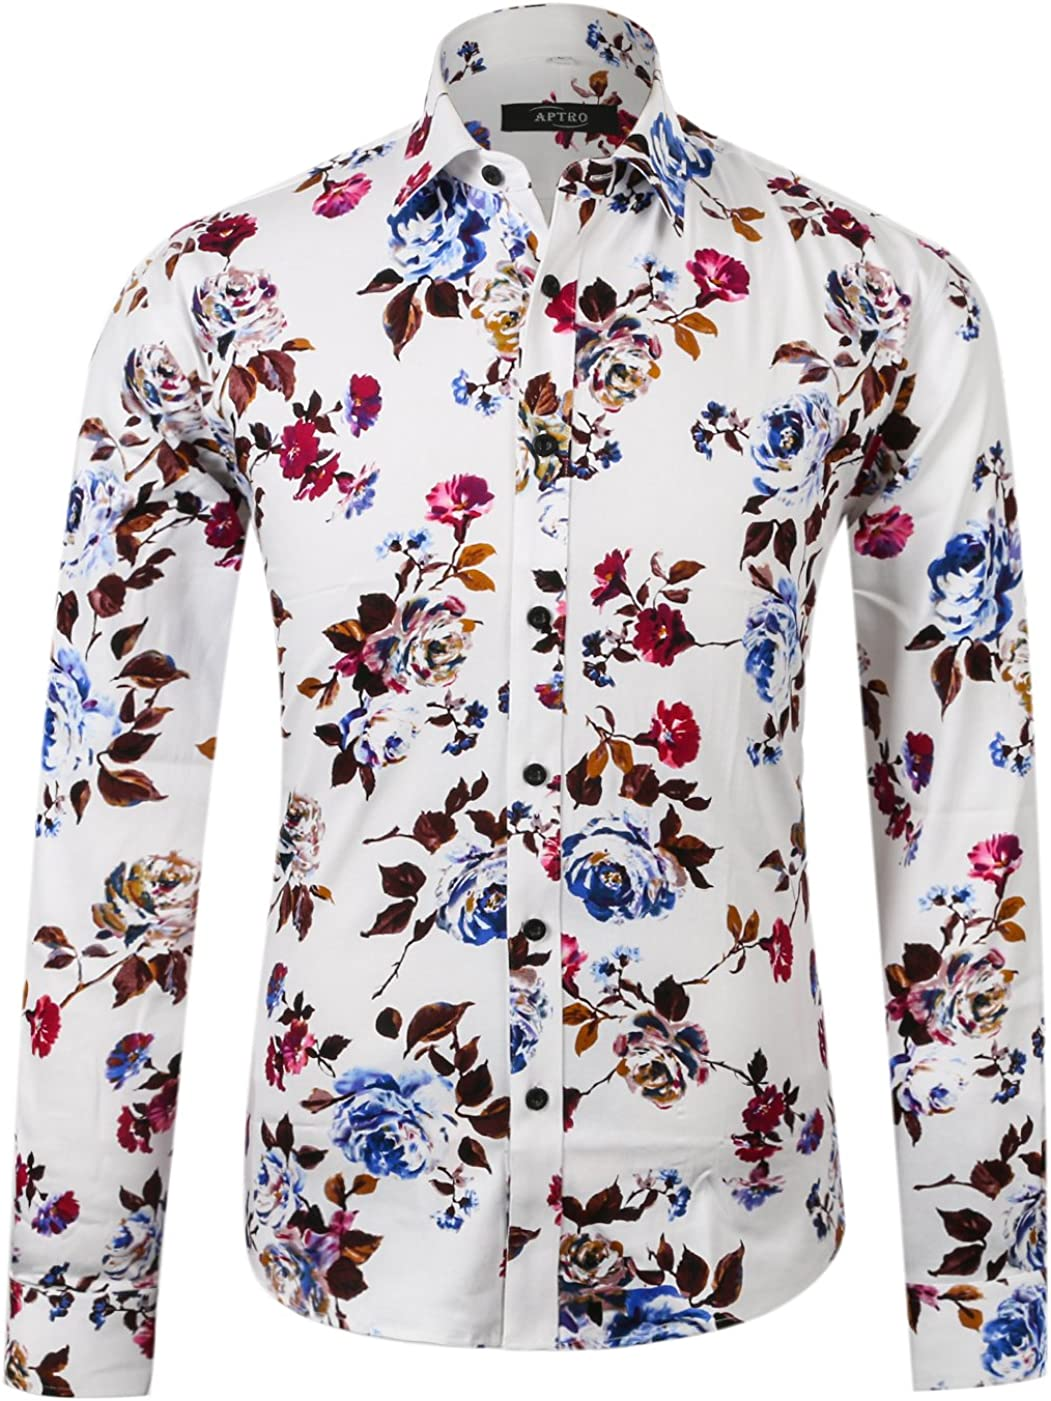 APTRO Men's Floral Shirt Slim Fit Casual Long Sleeve Shirt